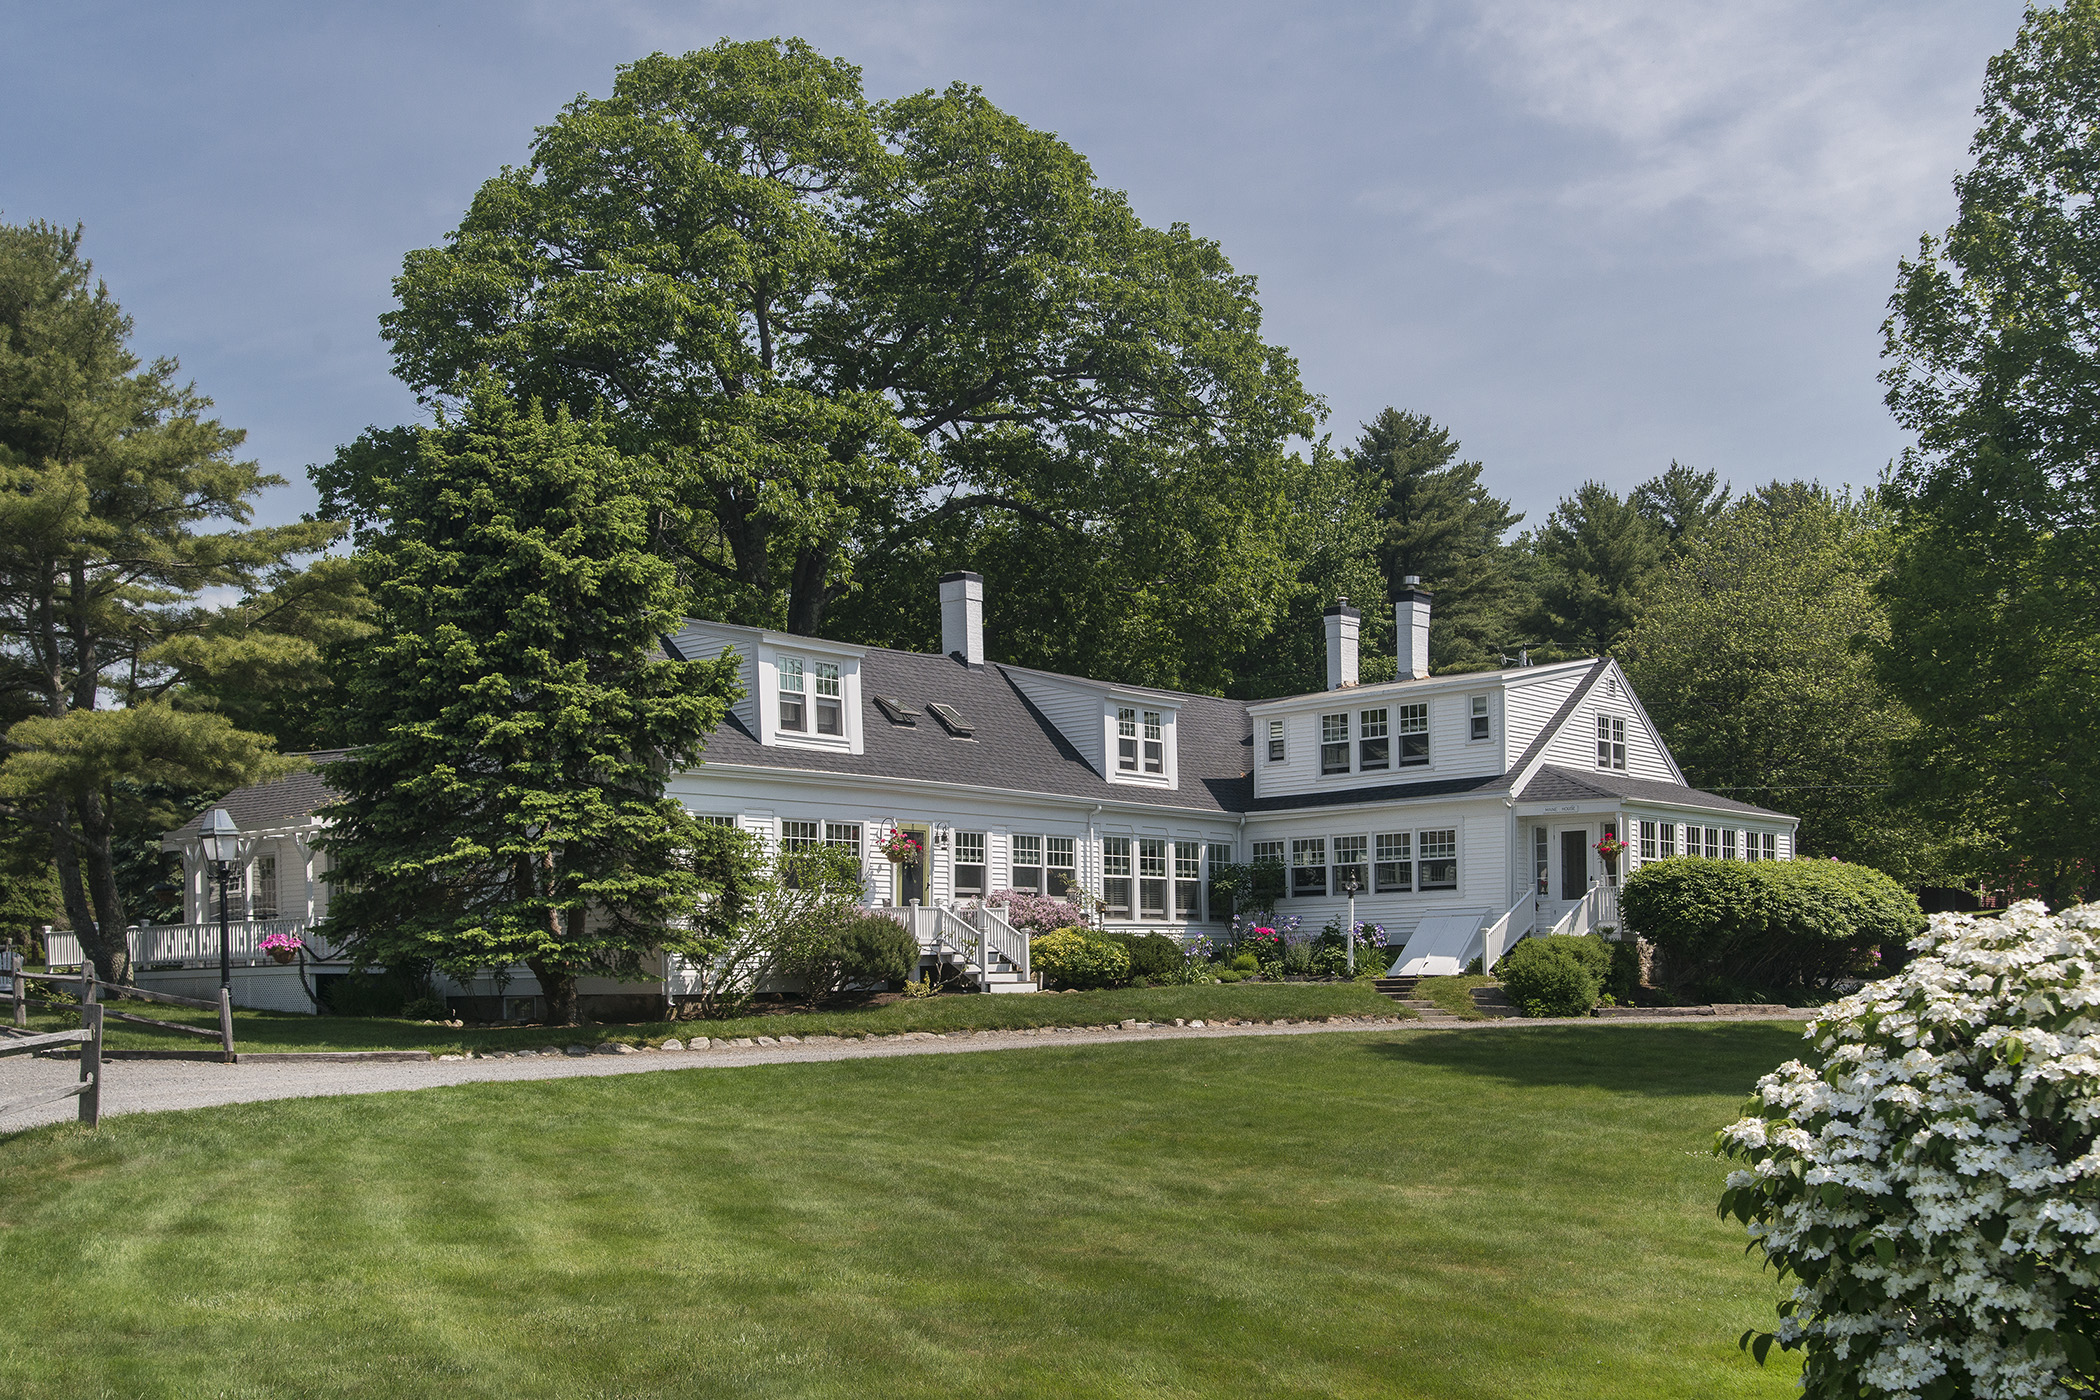 215 Drinkwater Point Rd, Yarmouth, ME 04096